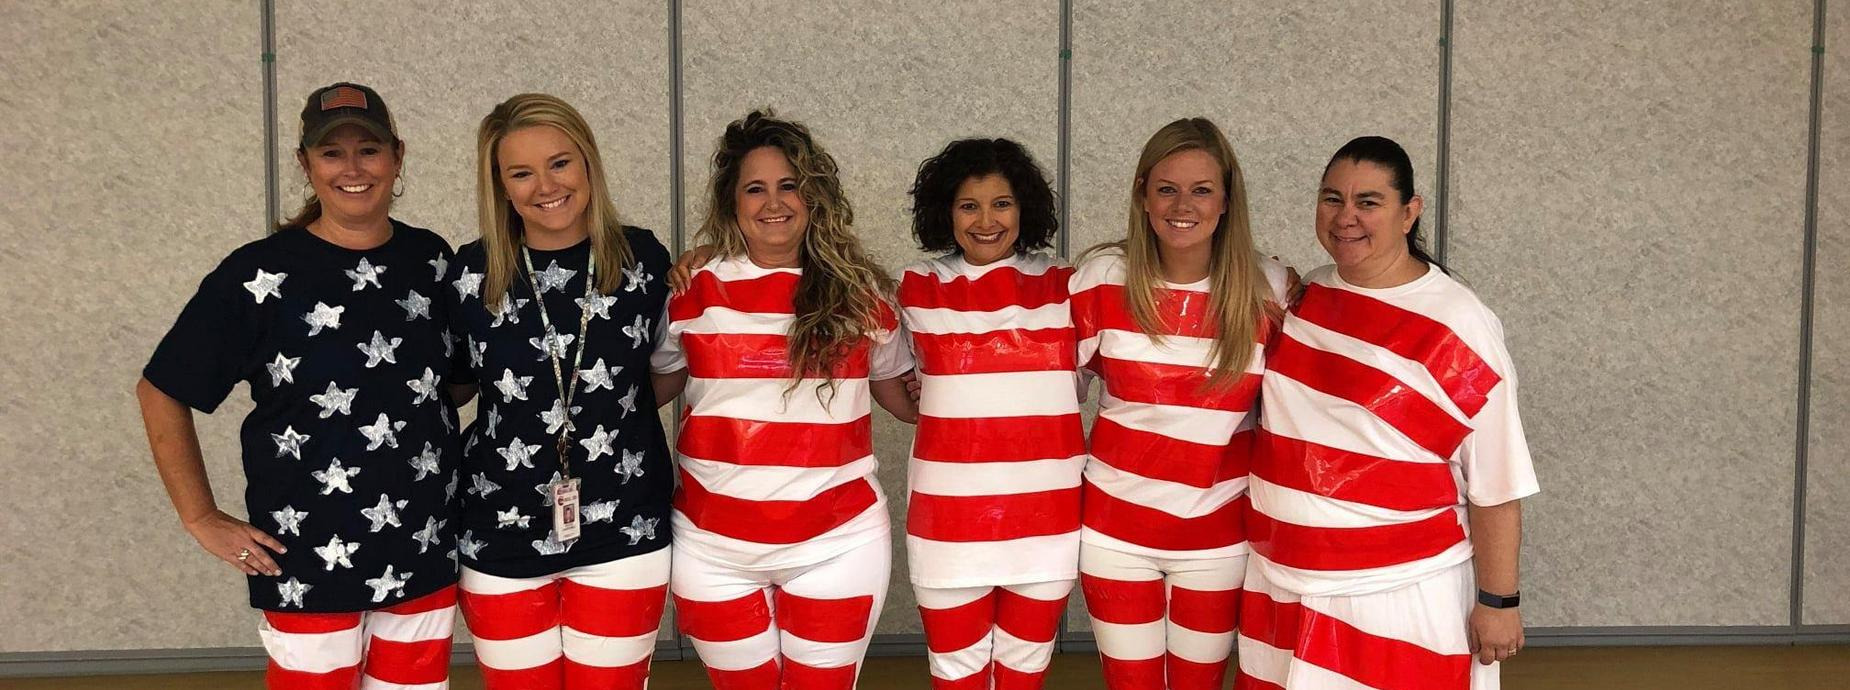 Kinder Teachers Dressed as US Flag